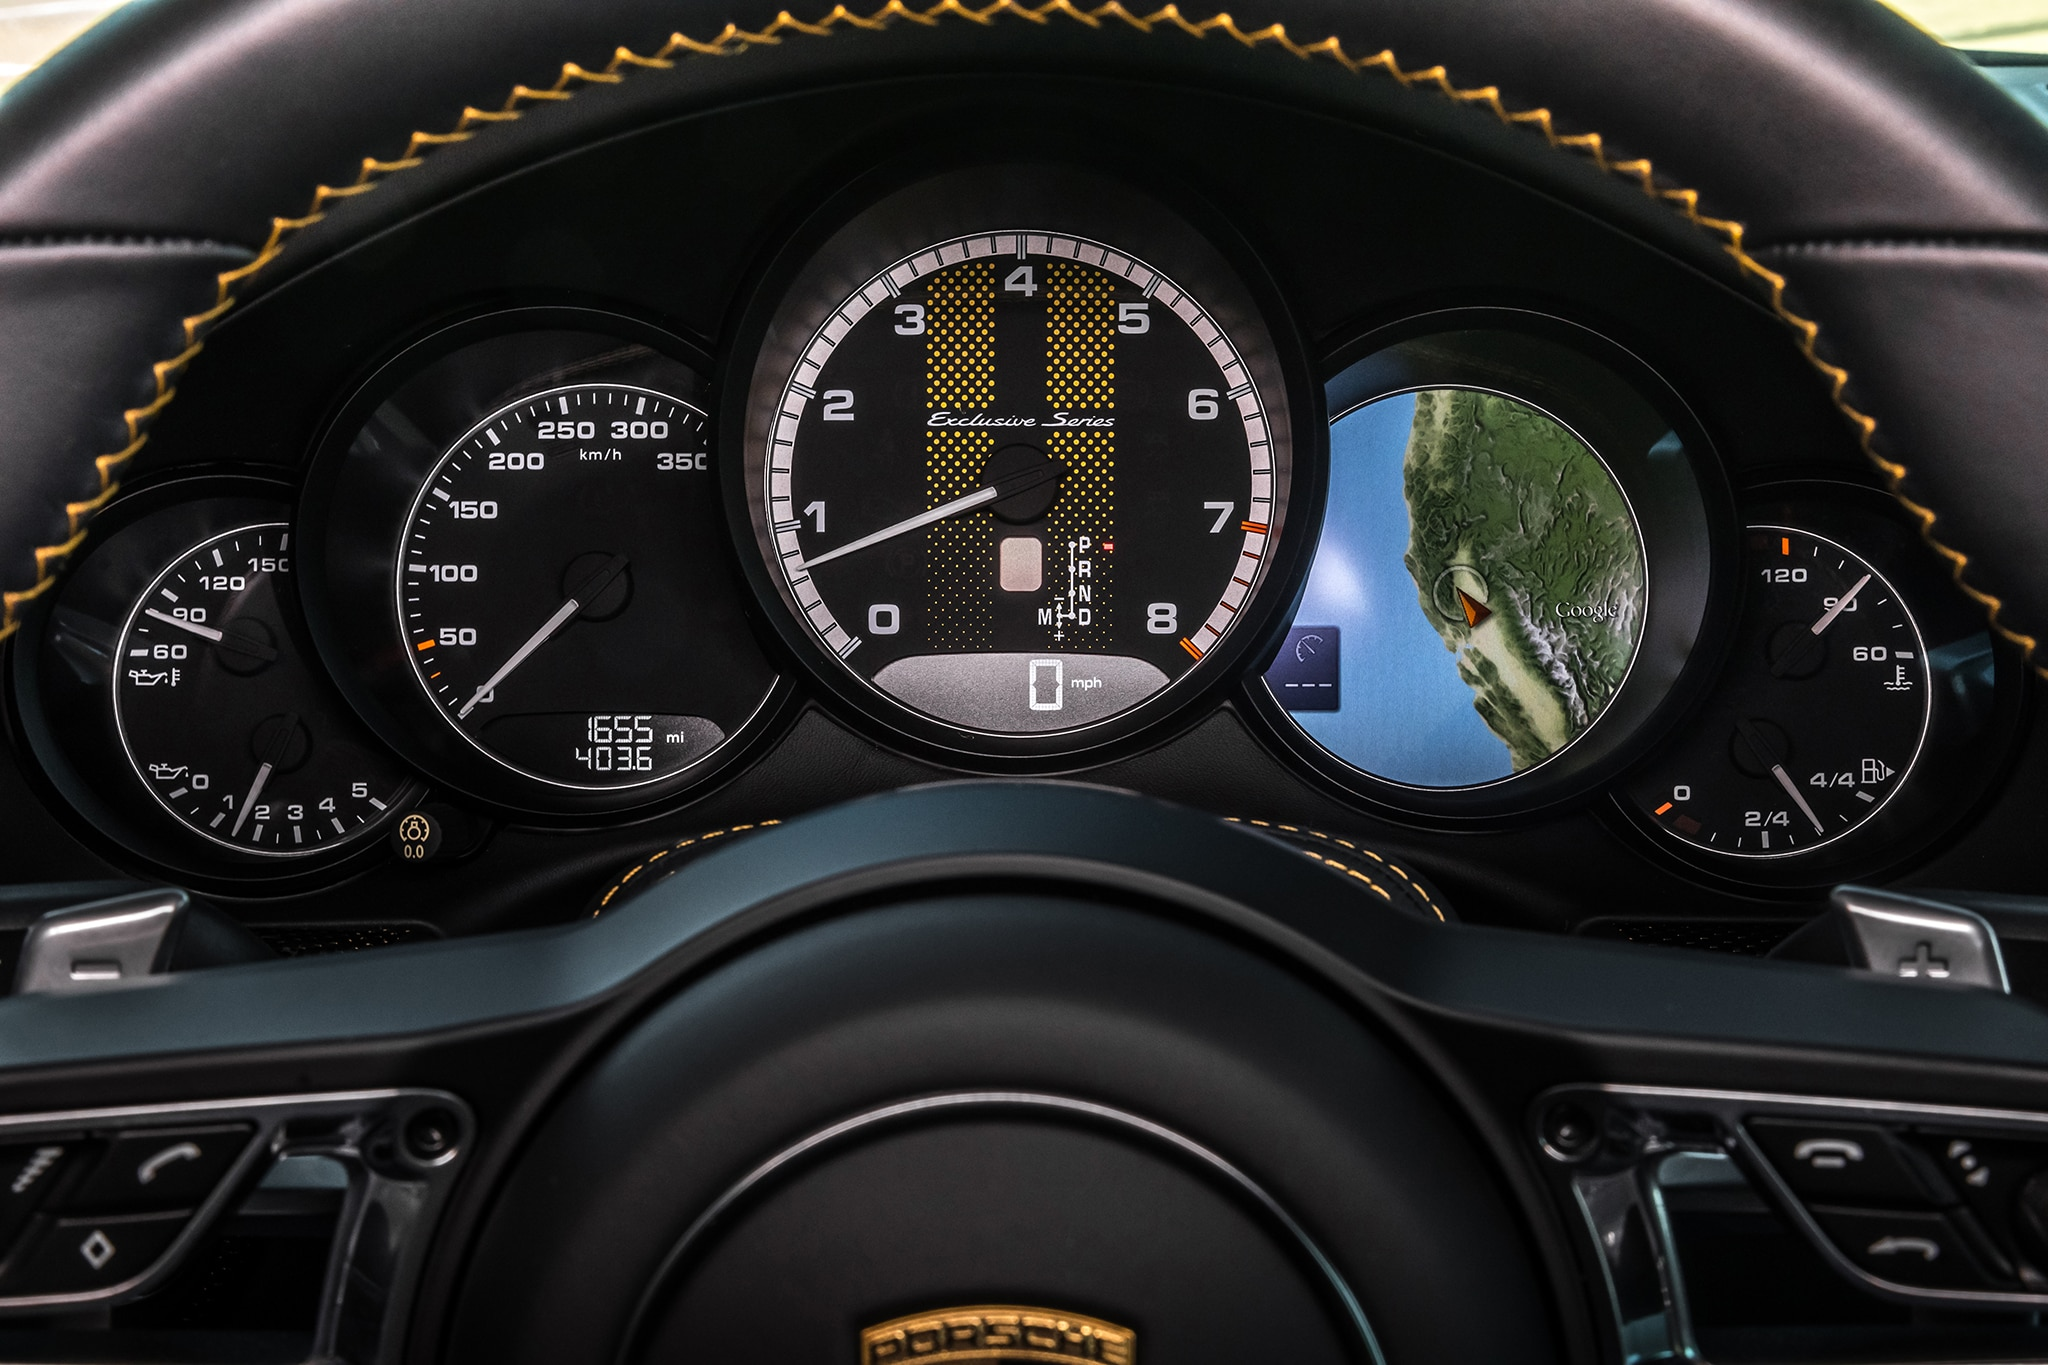 2018 Porsche 911 Turbo S Exclusive Intstrument Panel